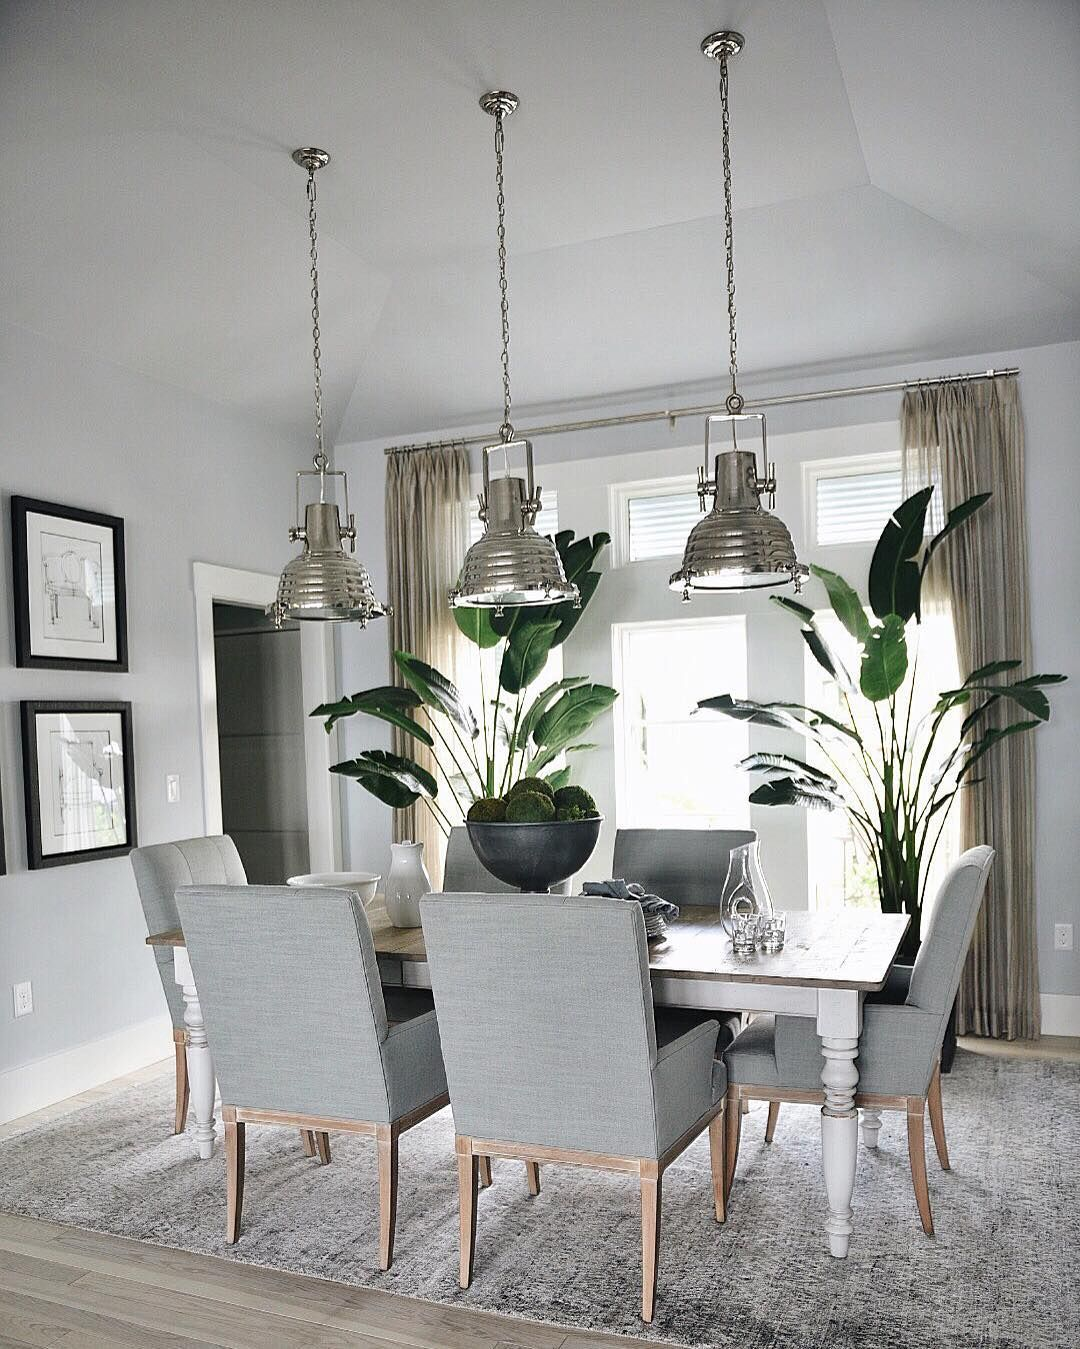 The Dining Room In The HGTV Dream Home Is So Fresh